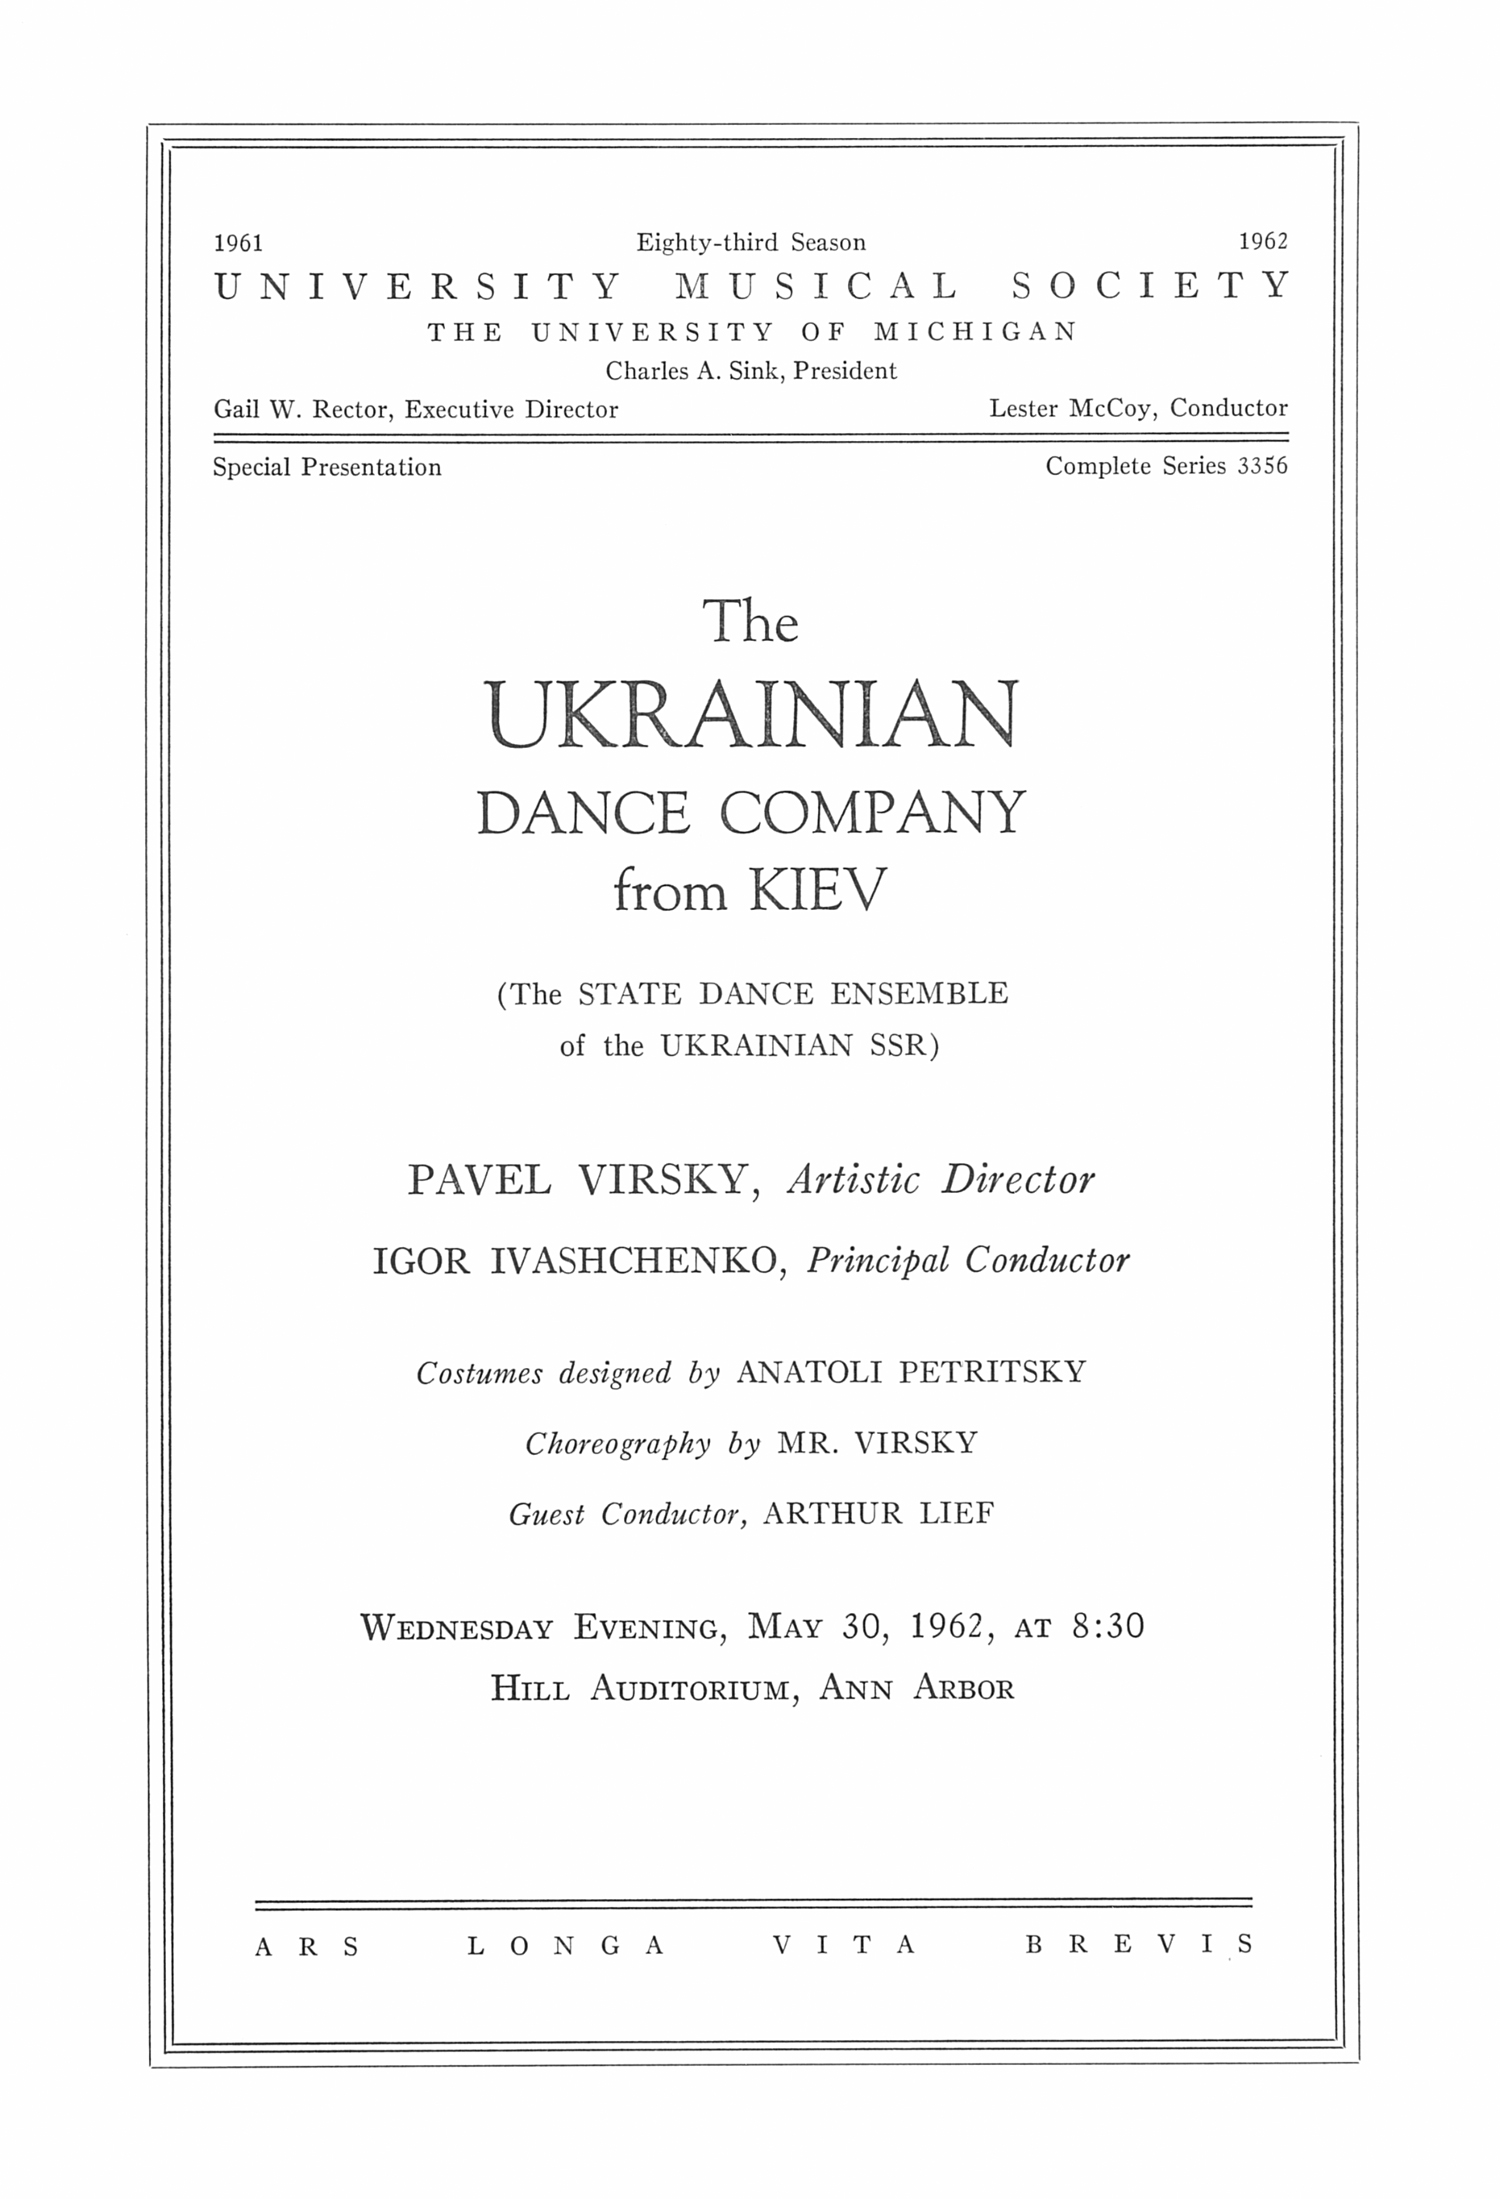 UMS Concert Program, May 30, 1962: Ukrainian -- Pavel Virsky image